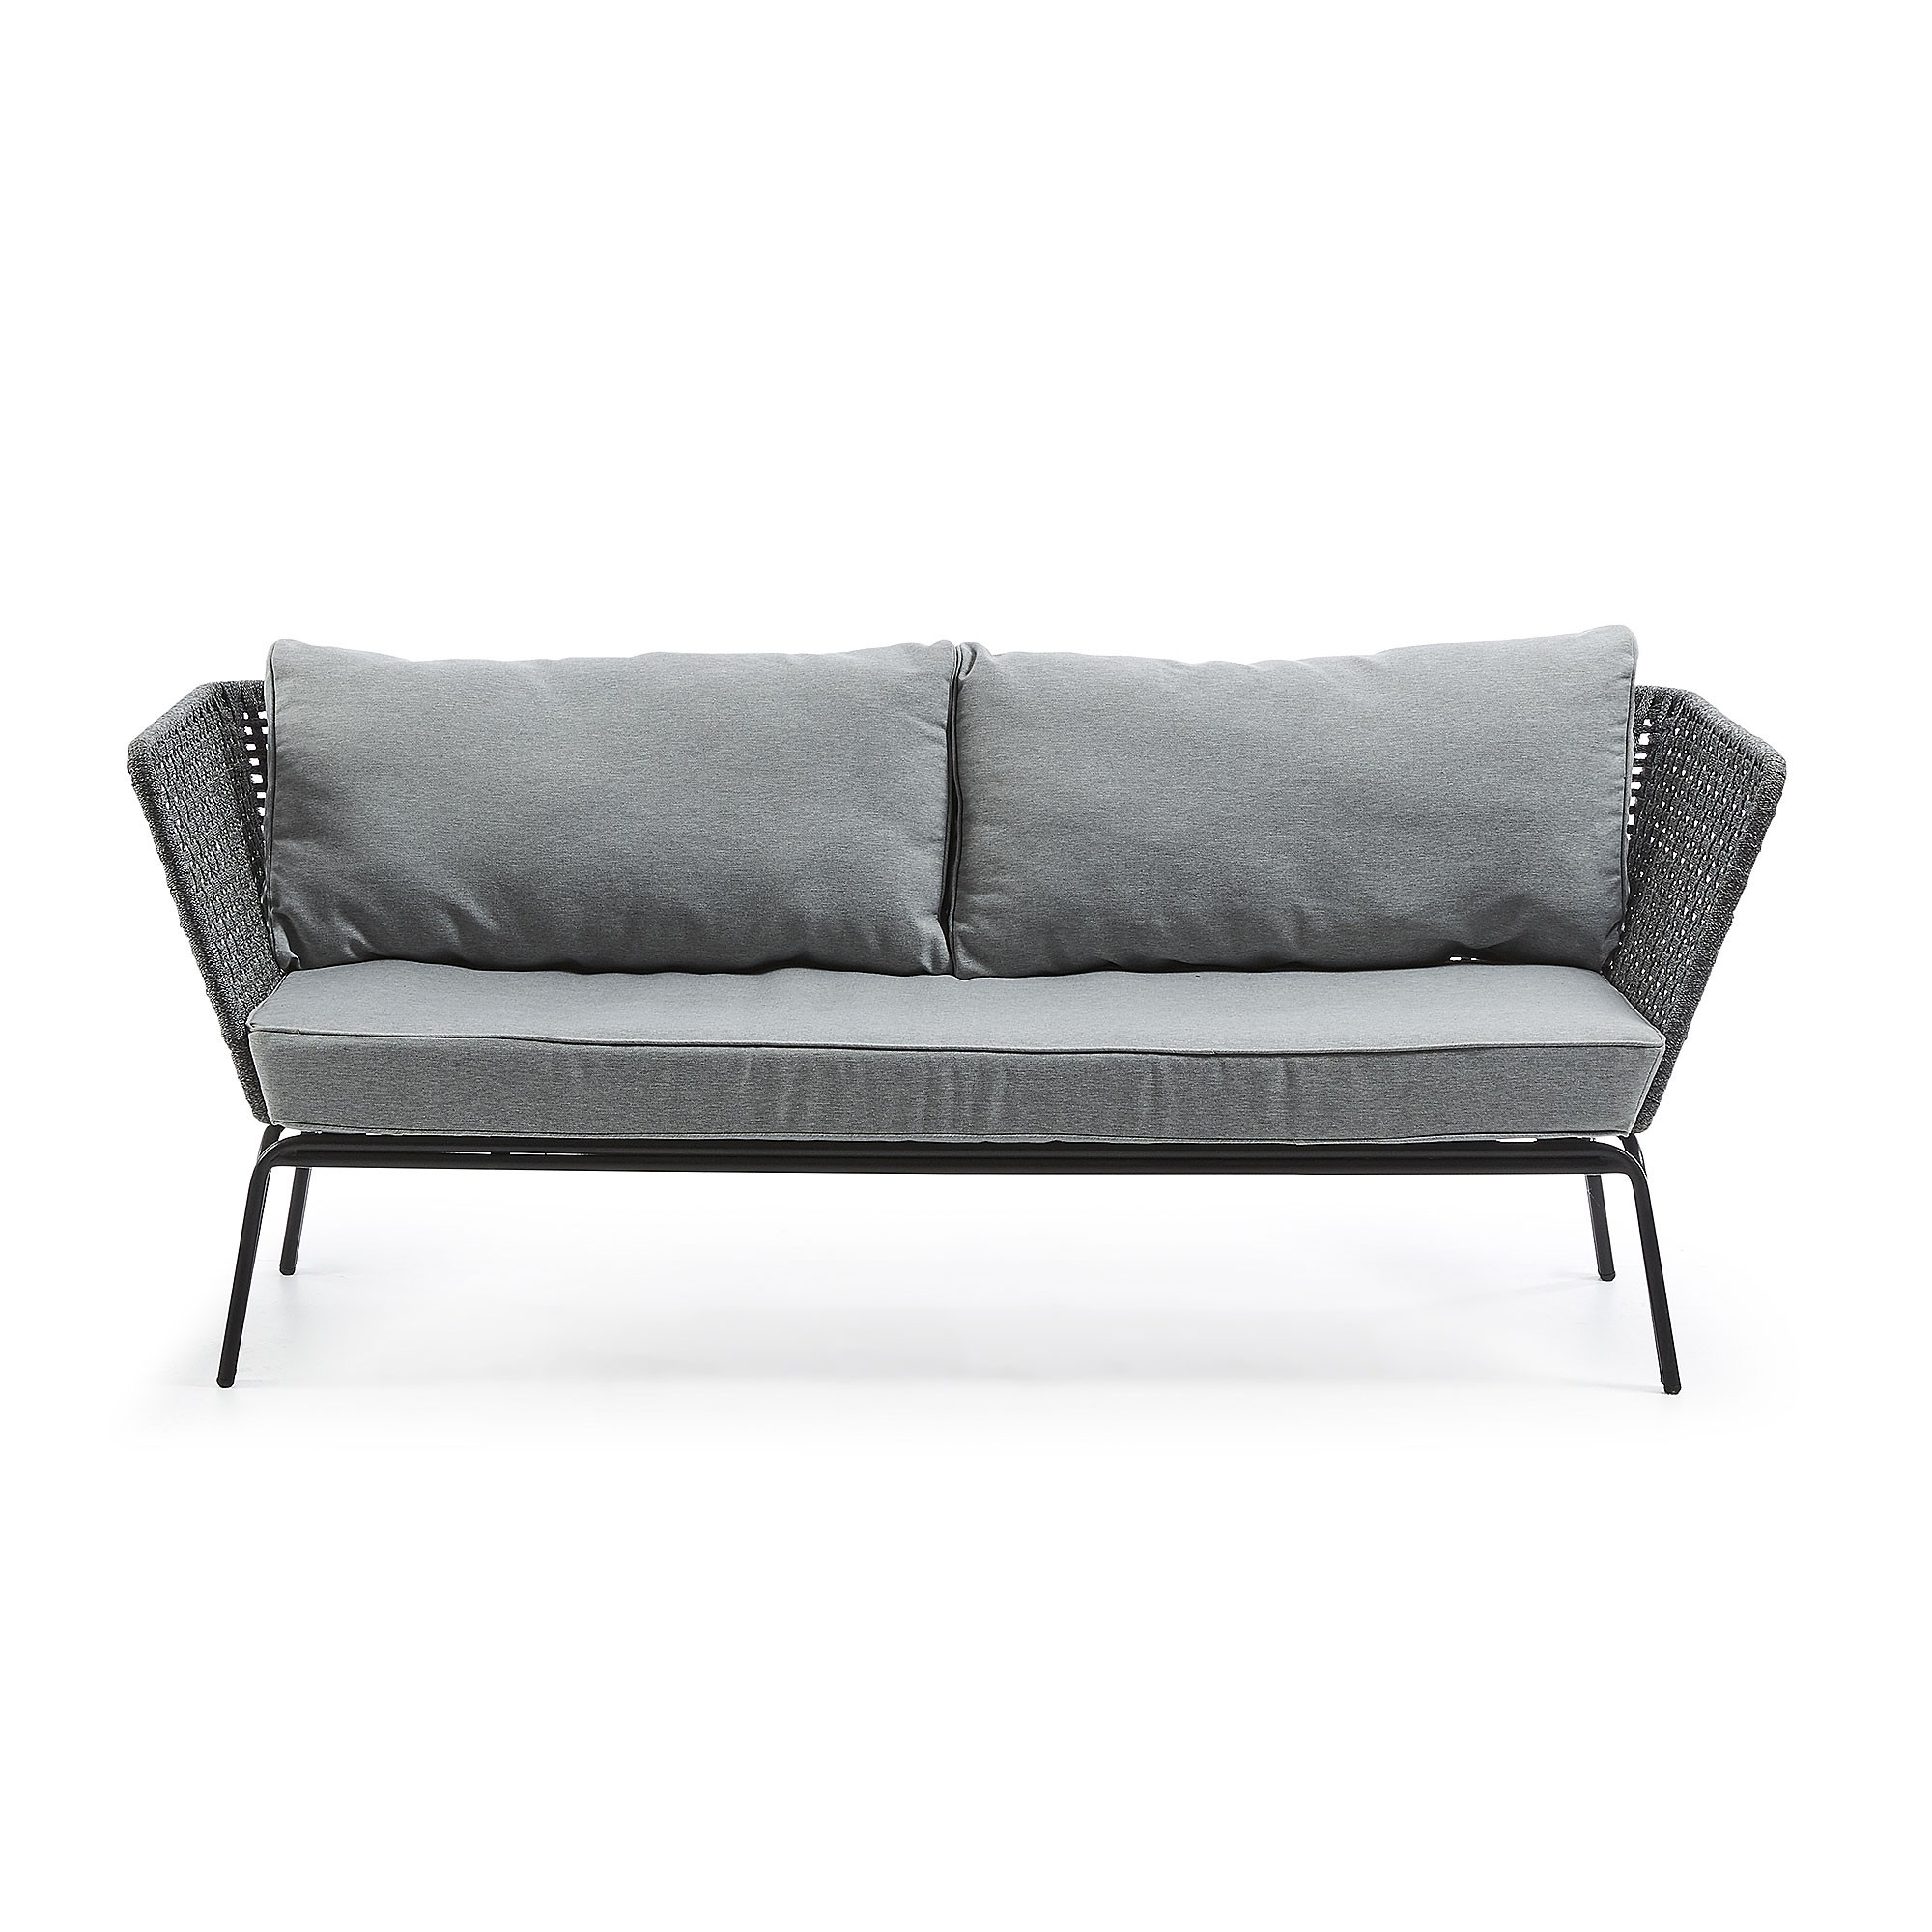 Borden Rope & Steel Indoor / Outdoor 3 Seater Sofa, Grey